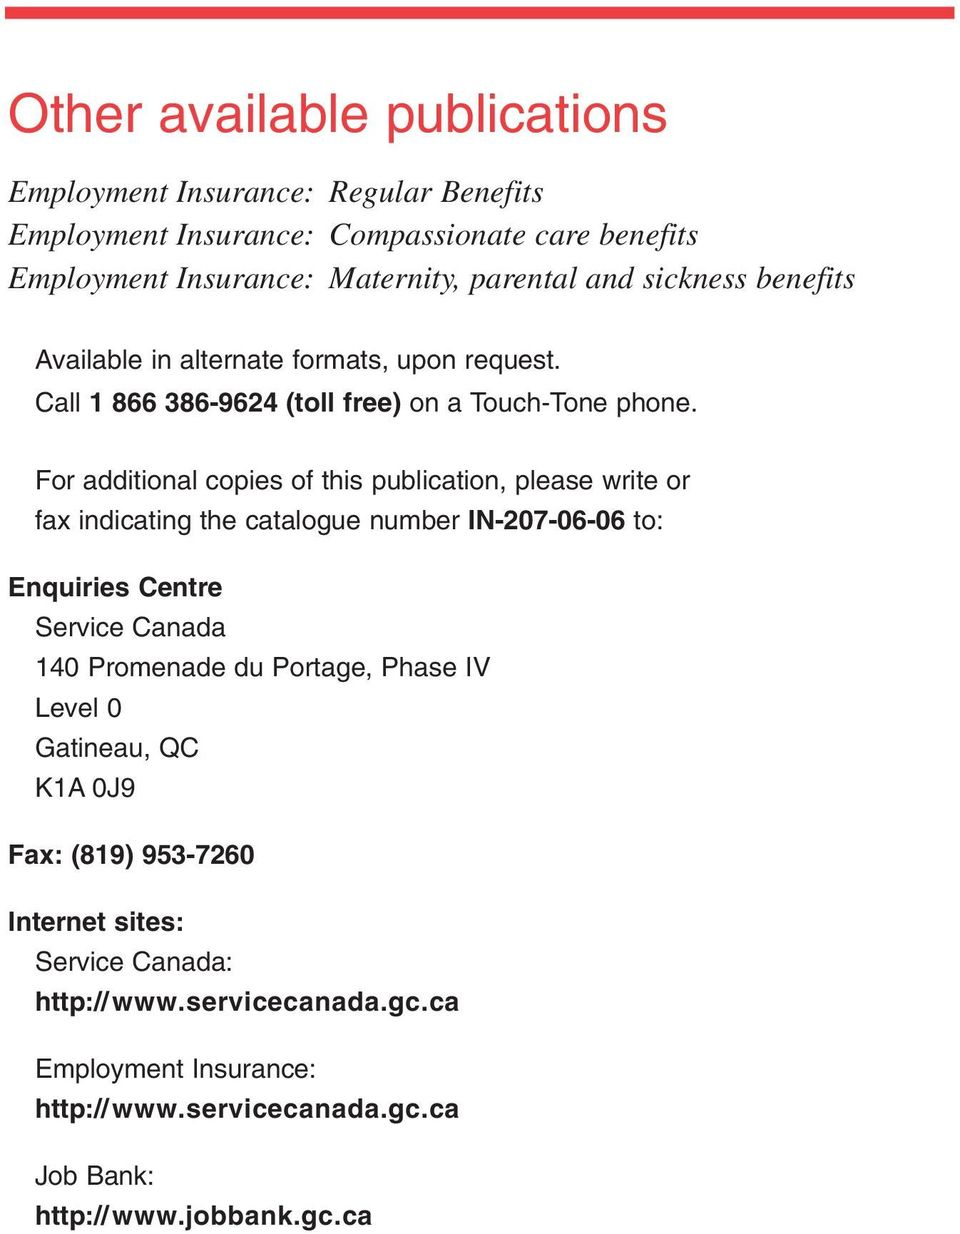 For additional copies of this publication, please write or fax indicating the catalogue number IN-207-06-06 to: Enquiries Centre Service Canada 140 Promenade du